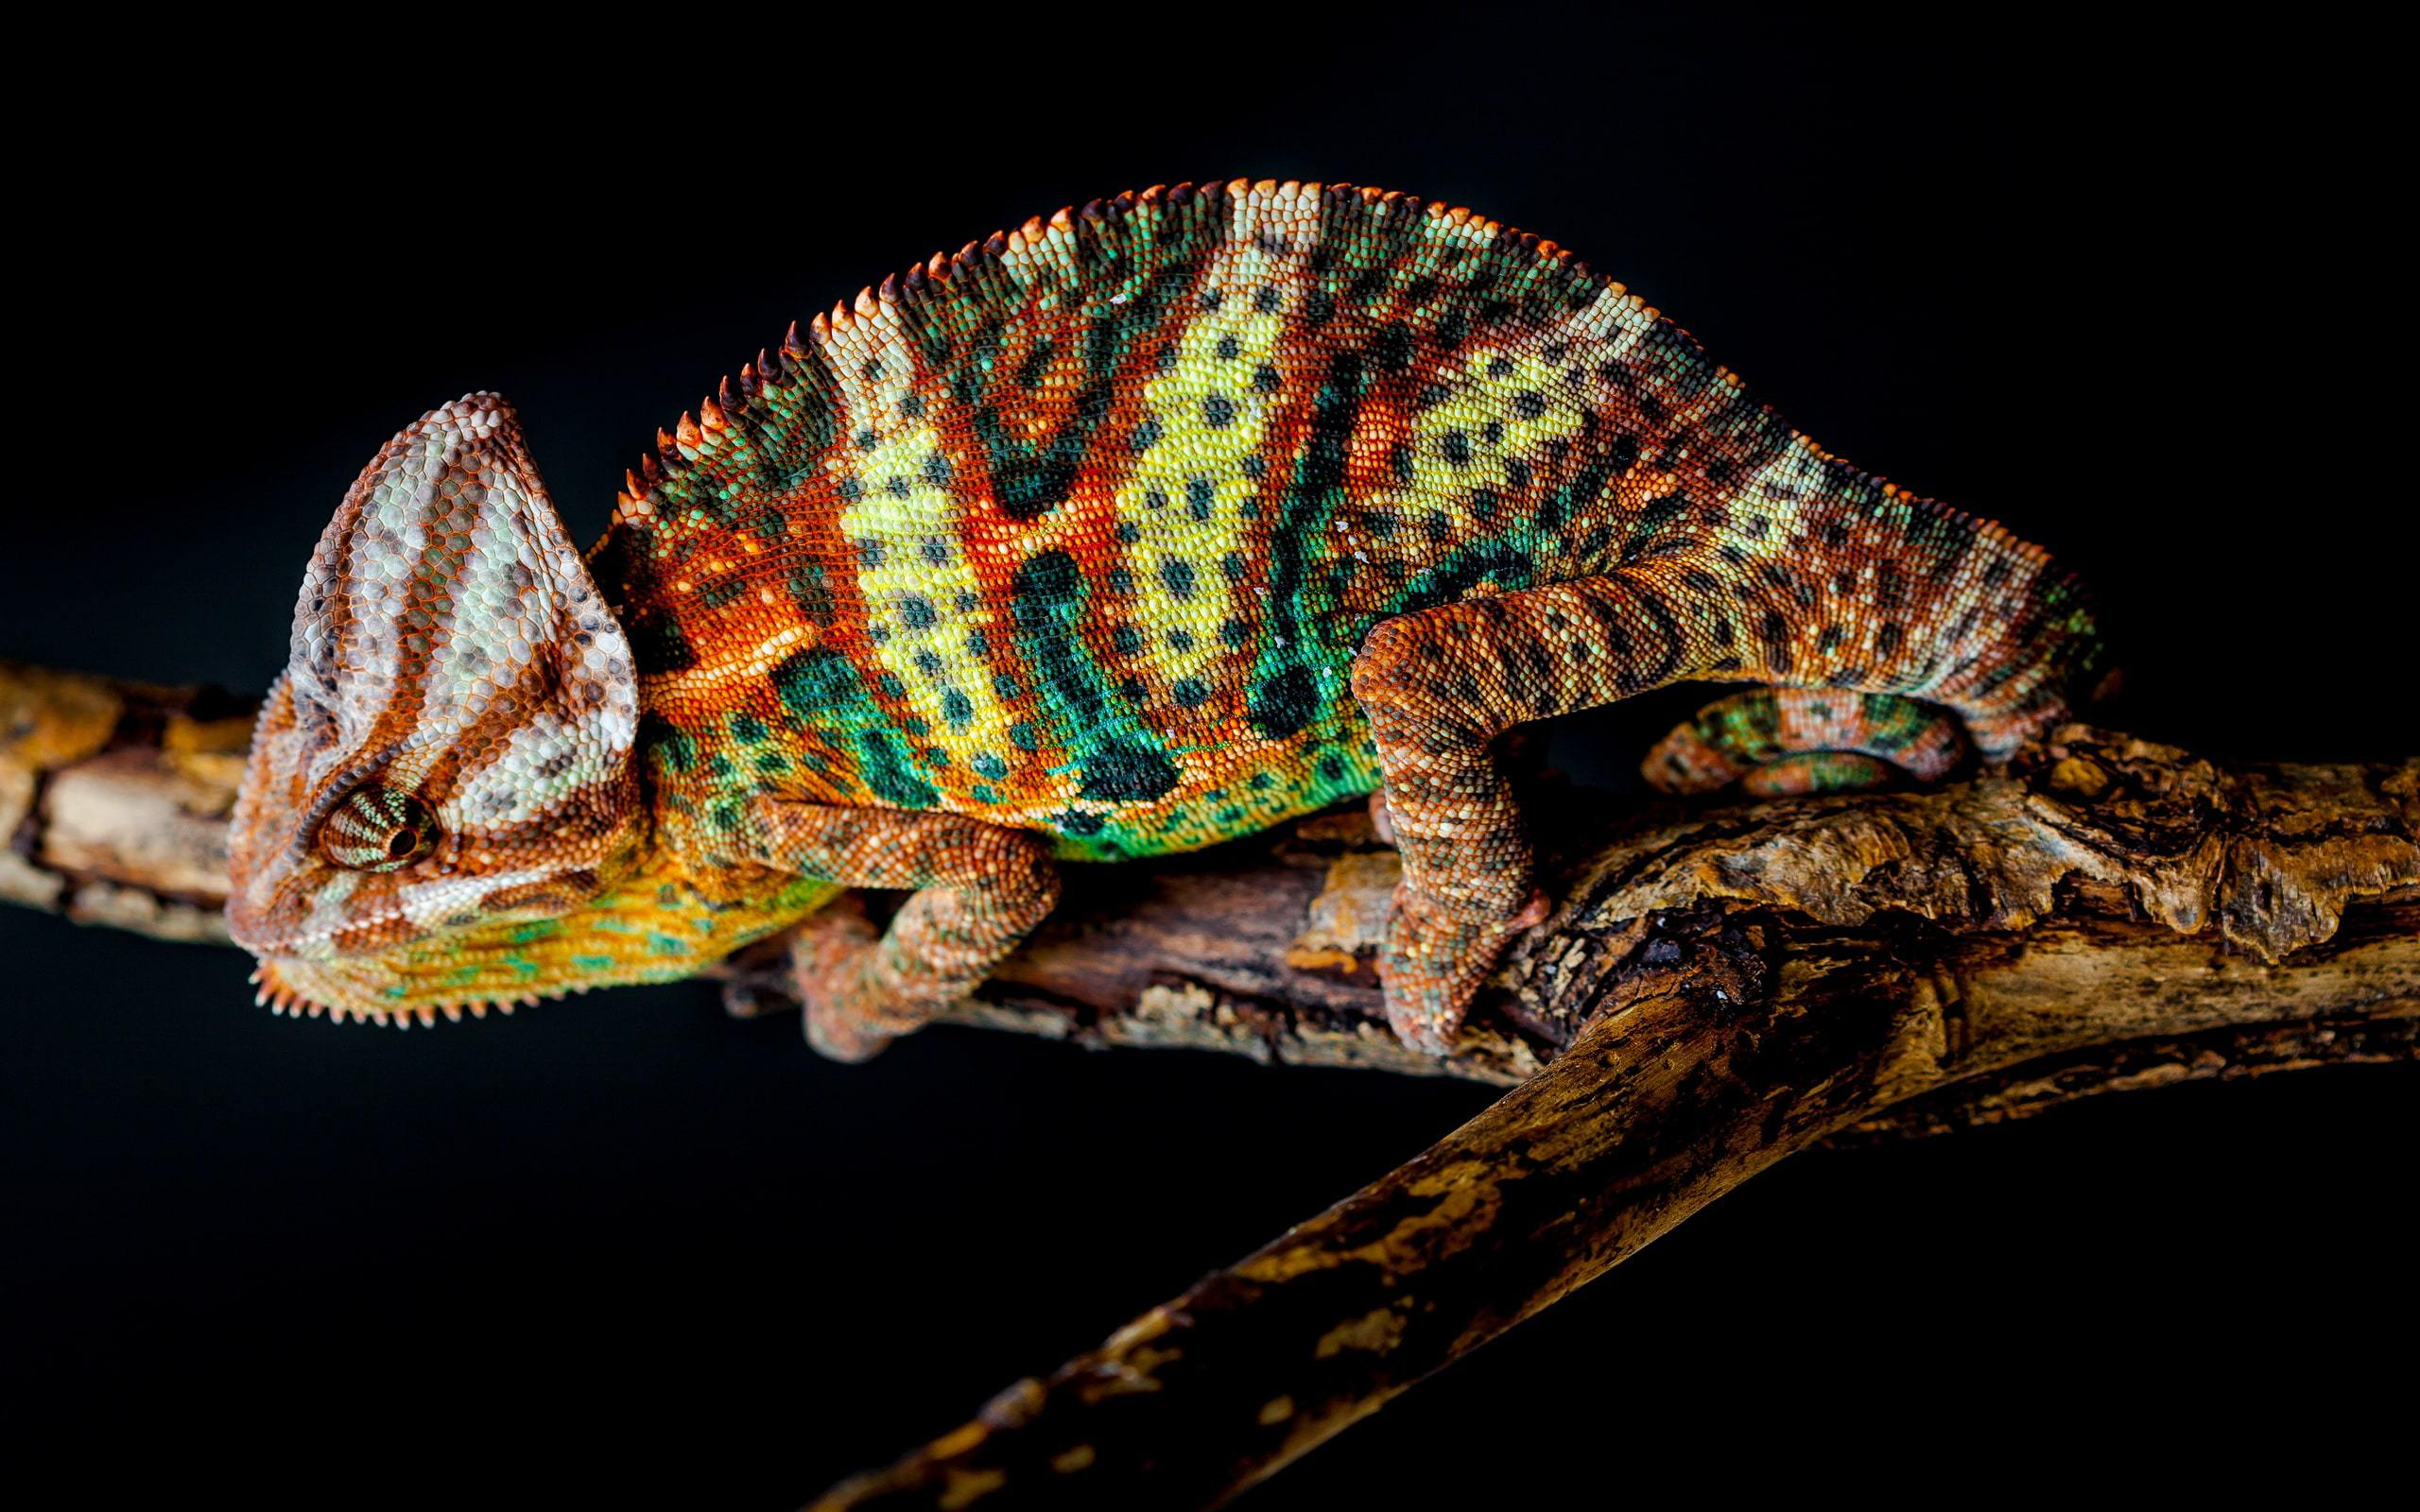 Chameleon Photos